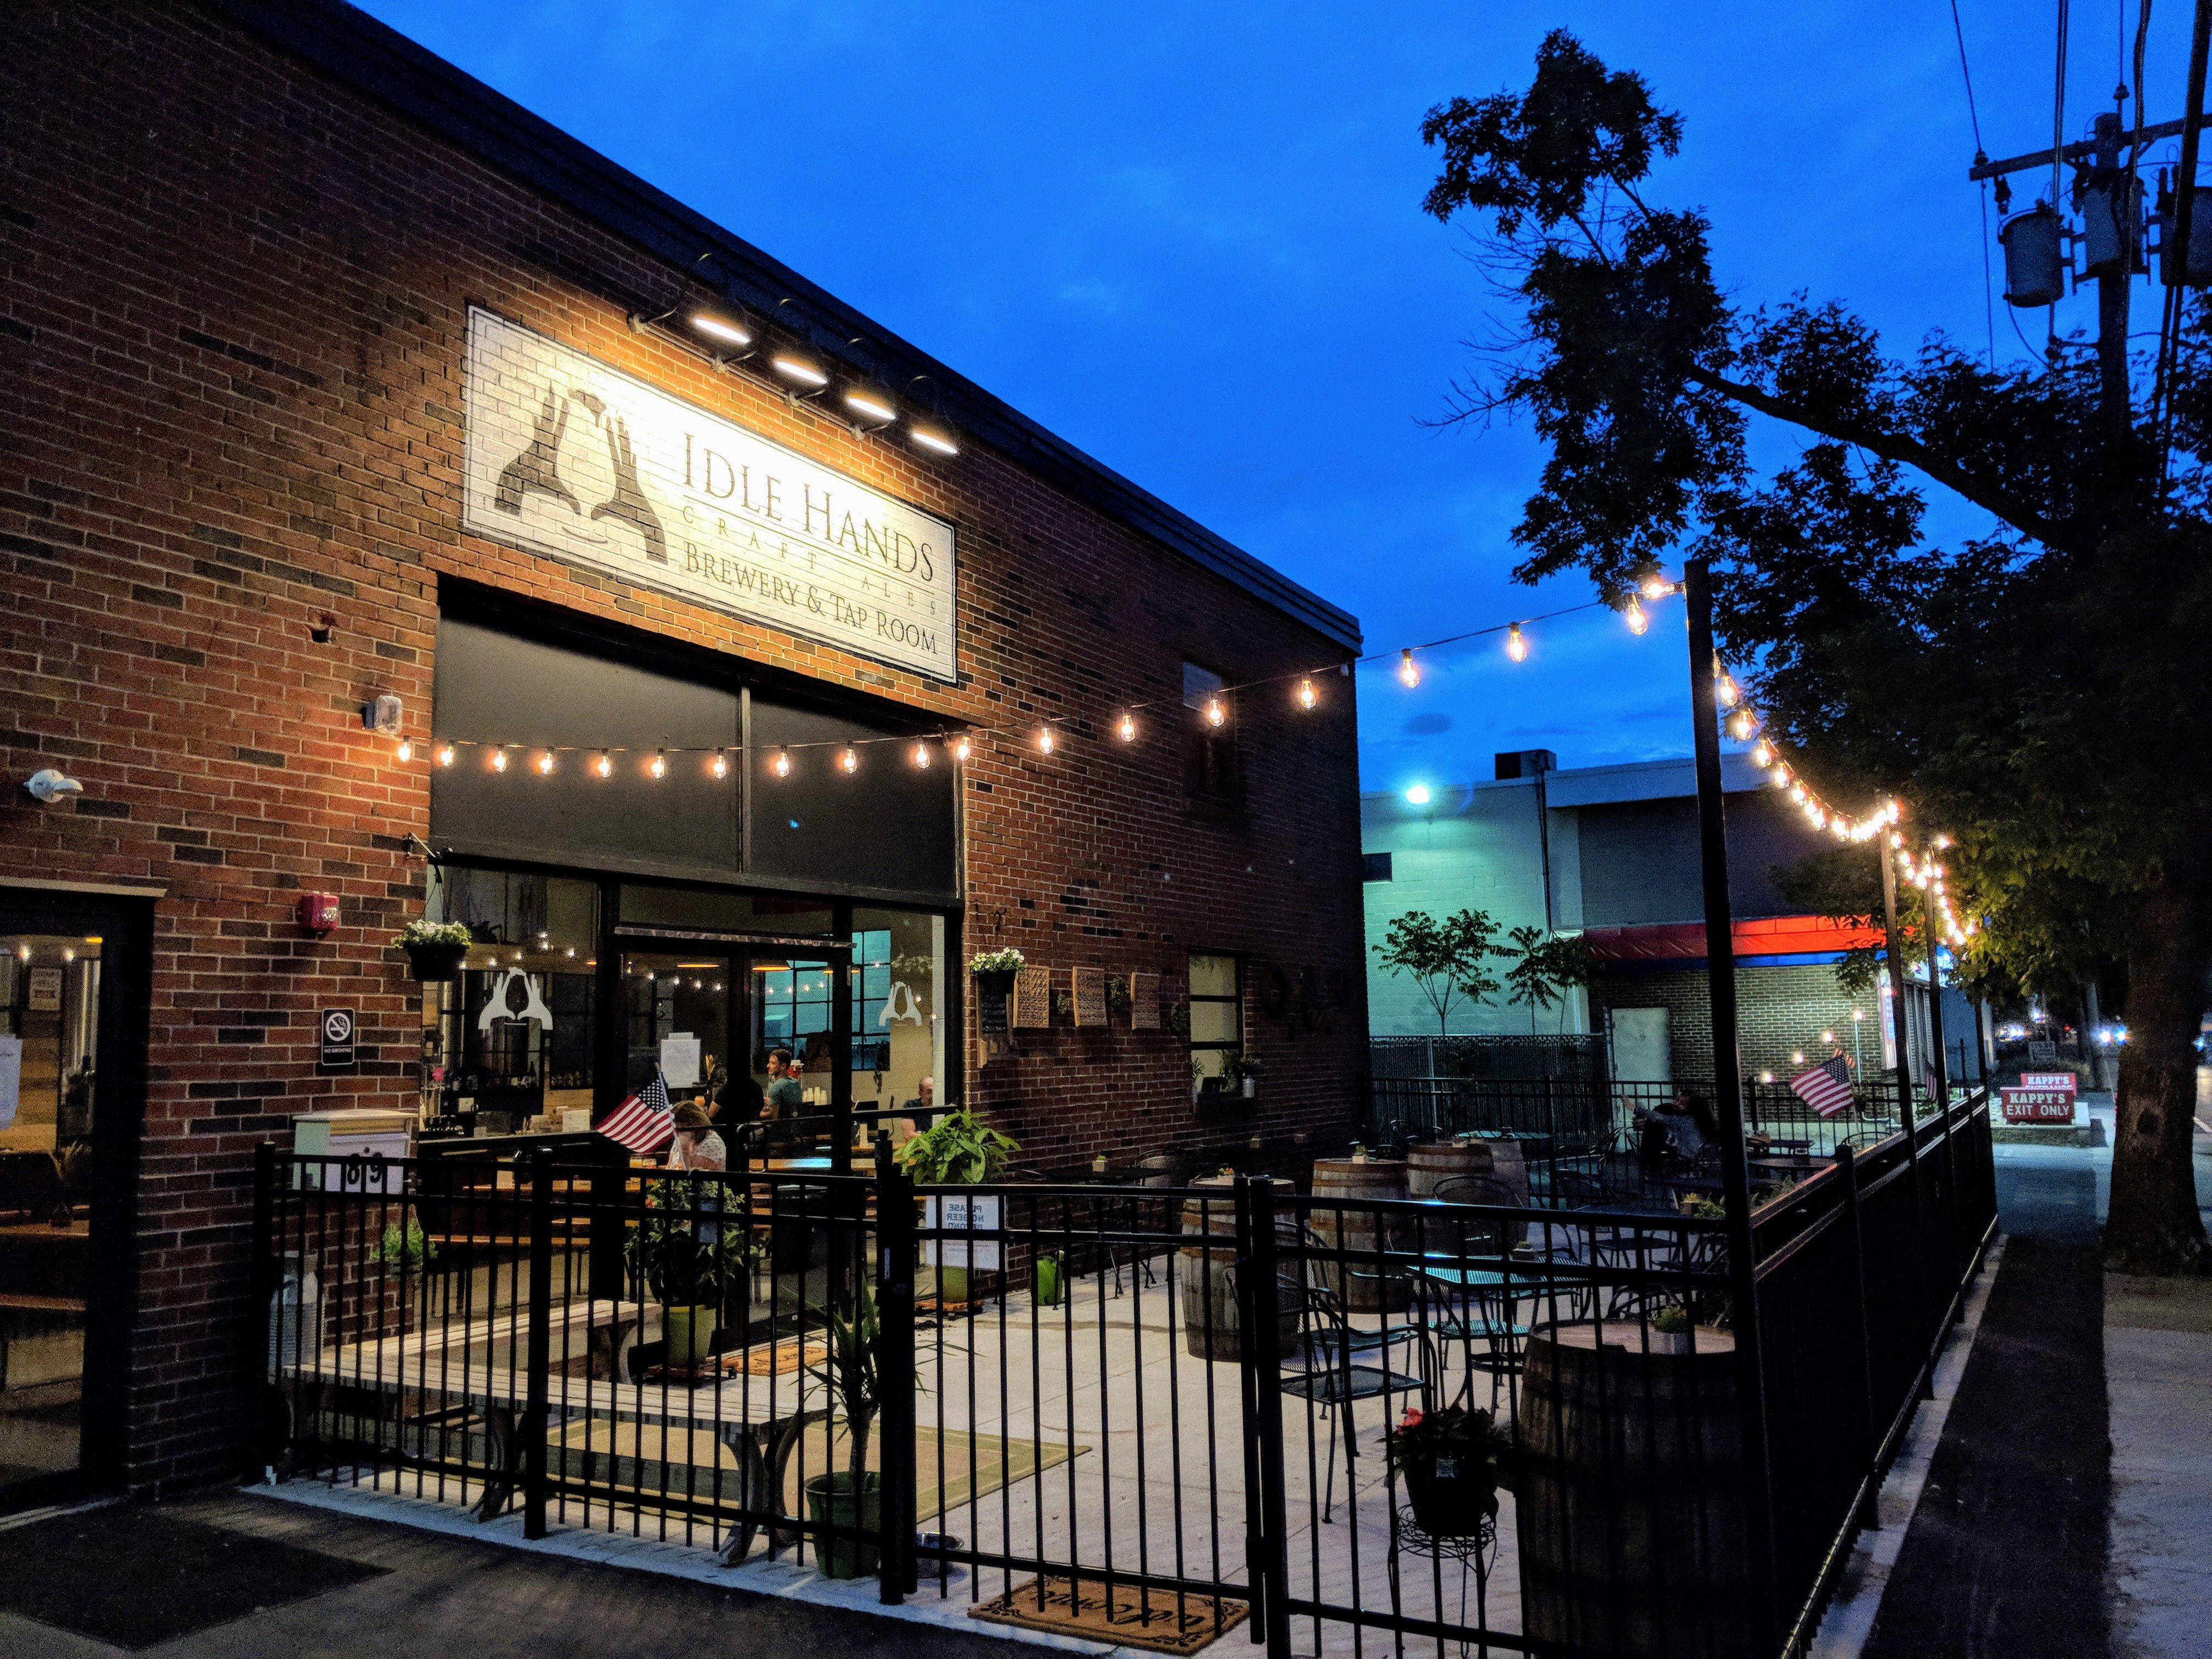 Idle Hands Brewery & Tap Room